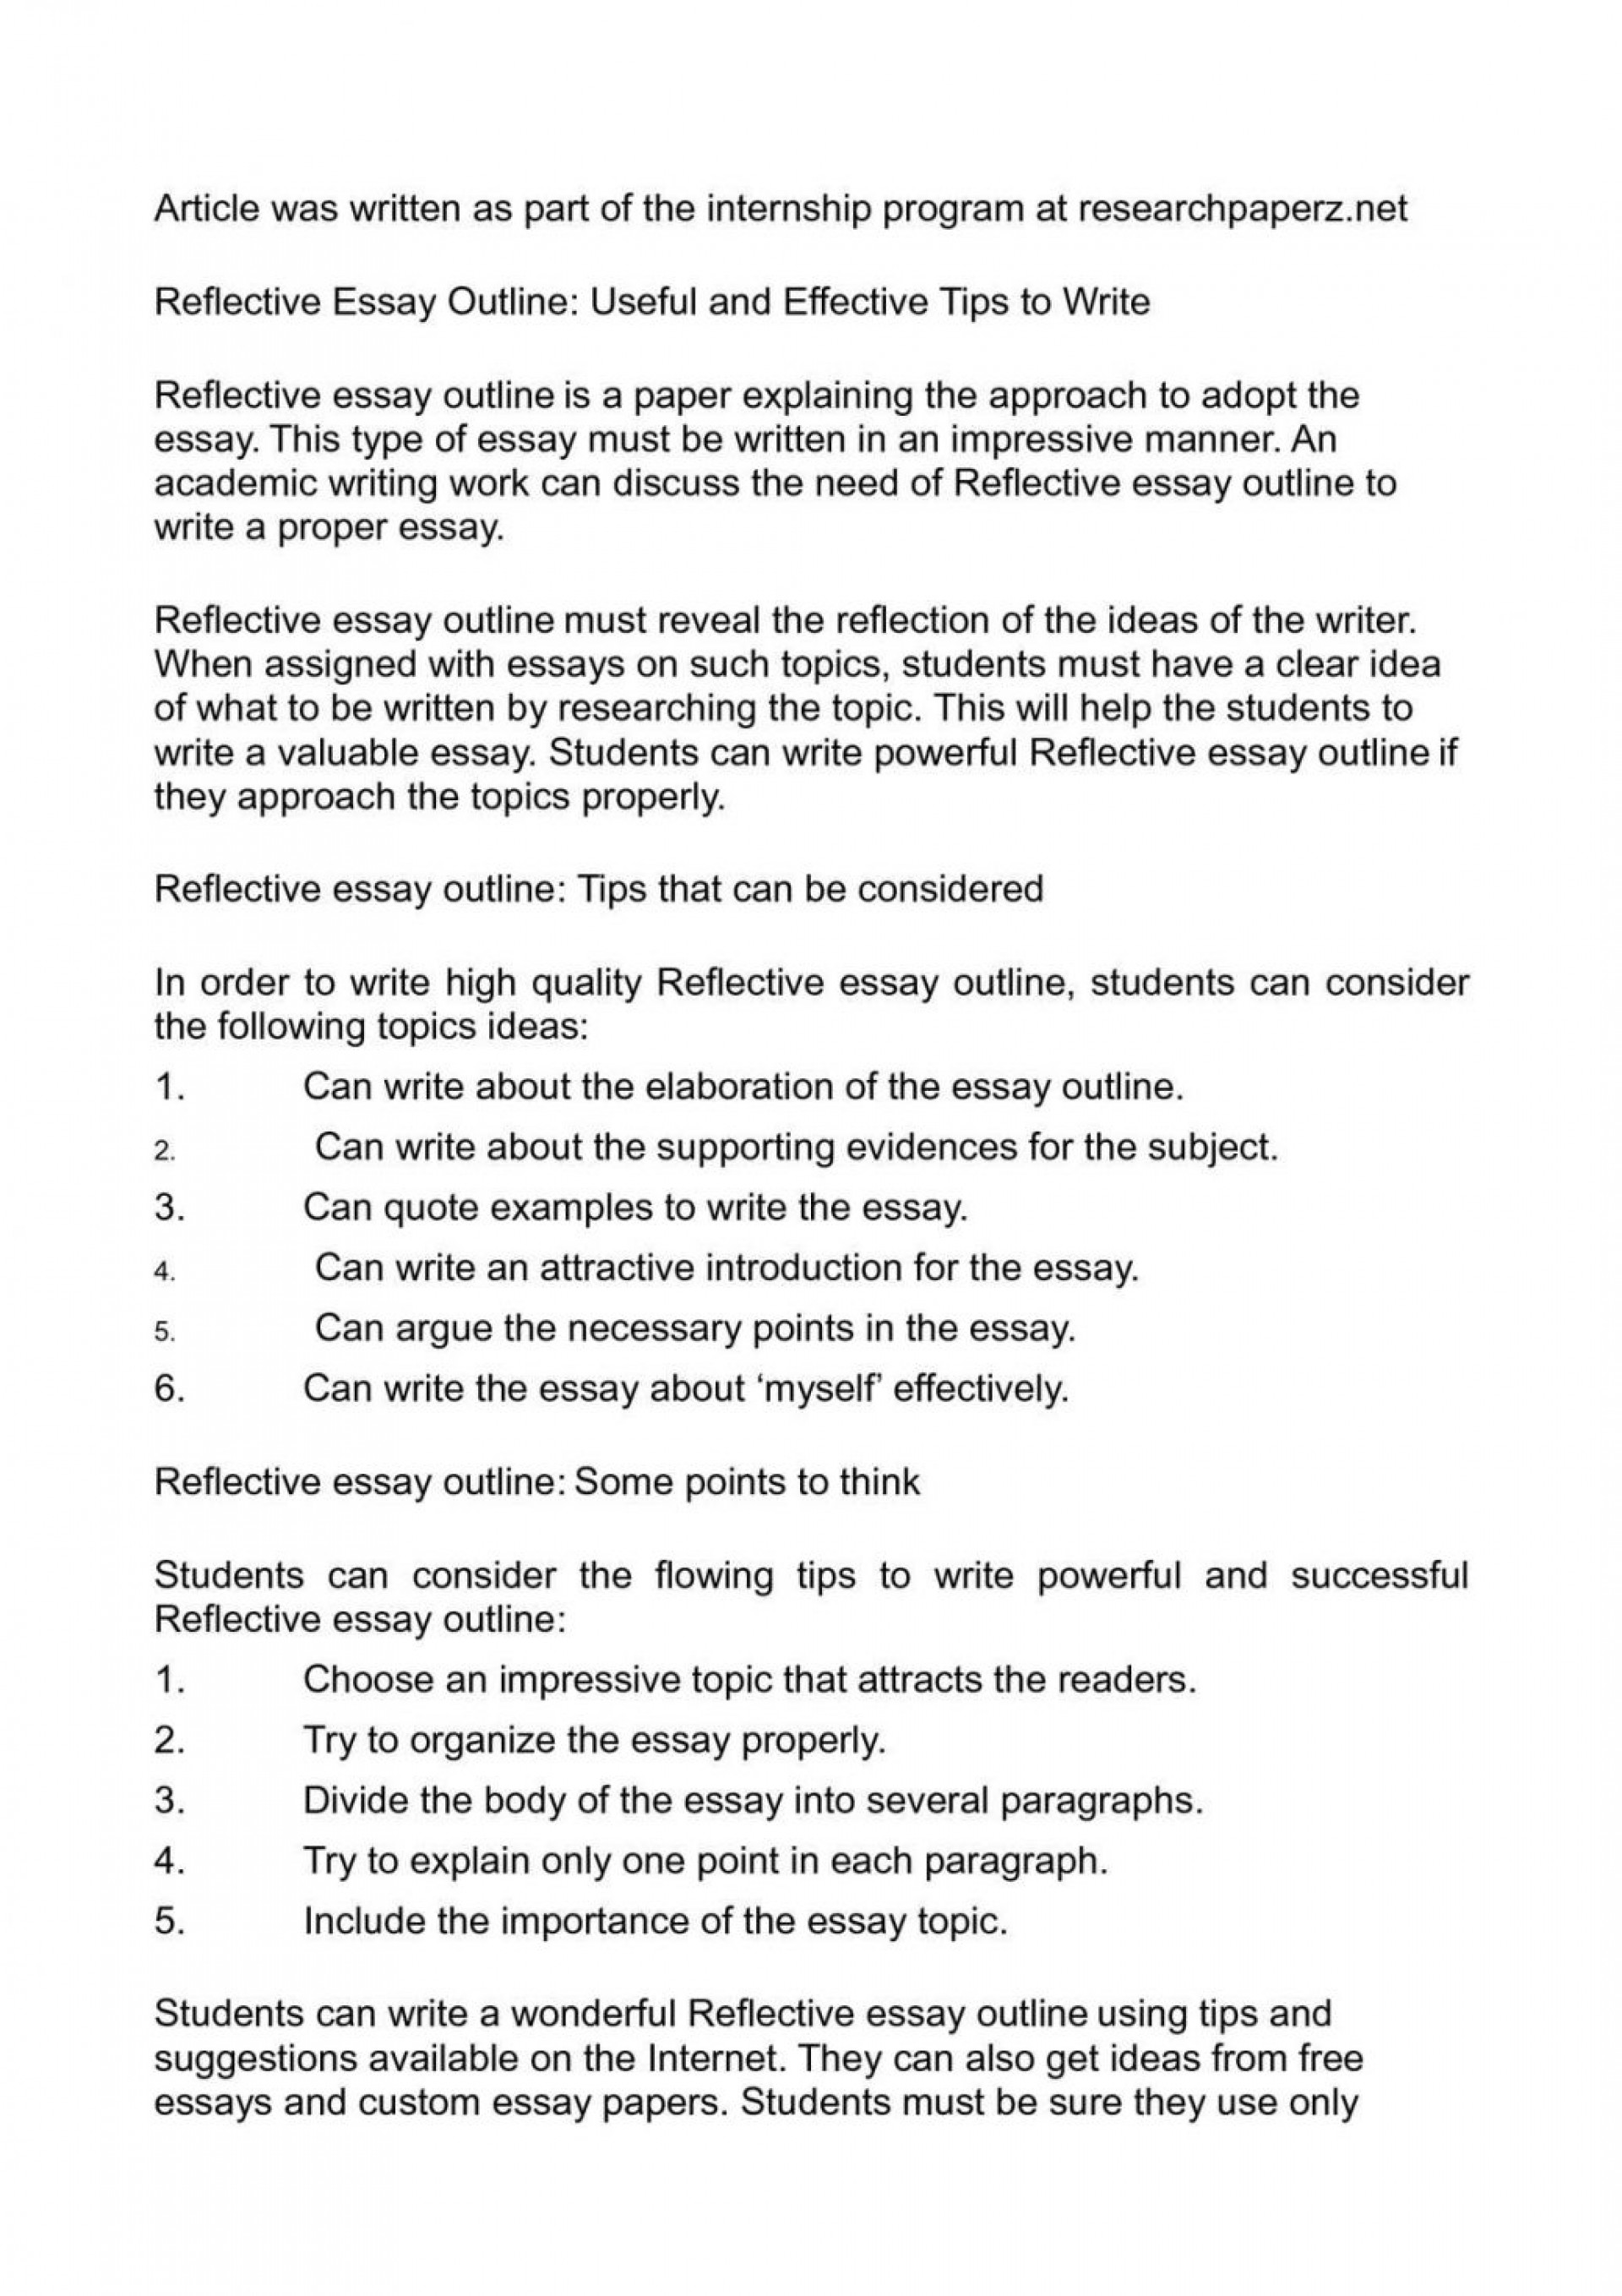 009 Research Paper Already Written Papers For Free Examples Of Reflective Writing Essays P1 Essay Outline Homework Academic Service Avessaymtbb Infra Image Inspirations Unique Pre 1920